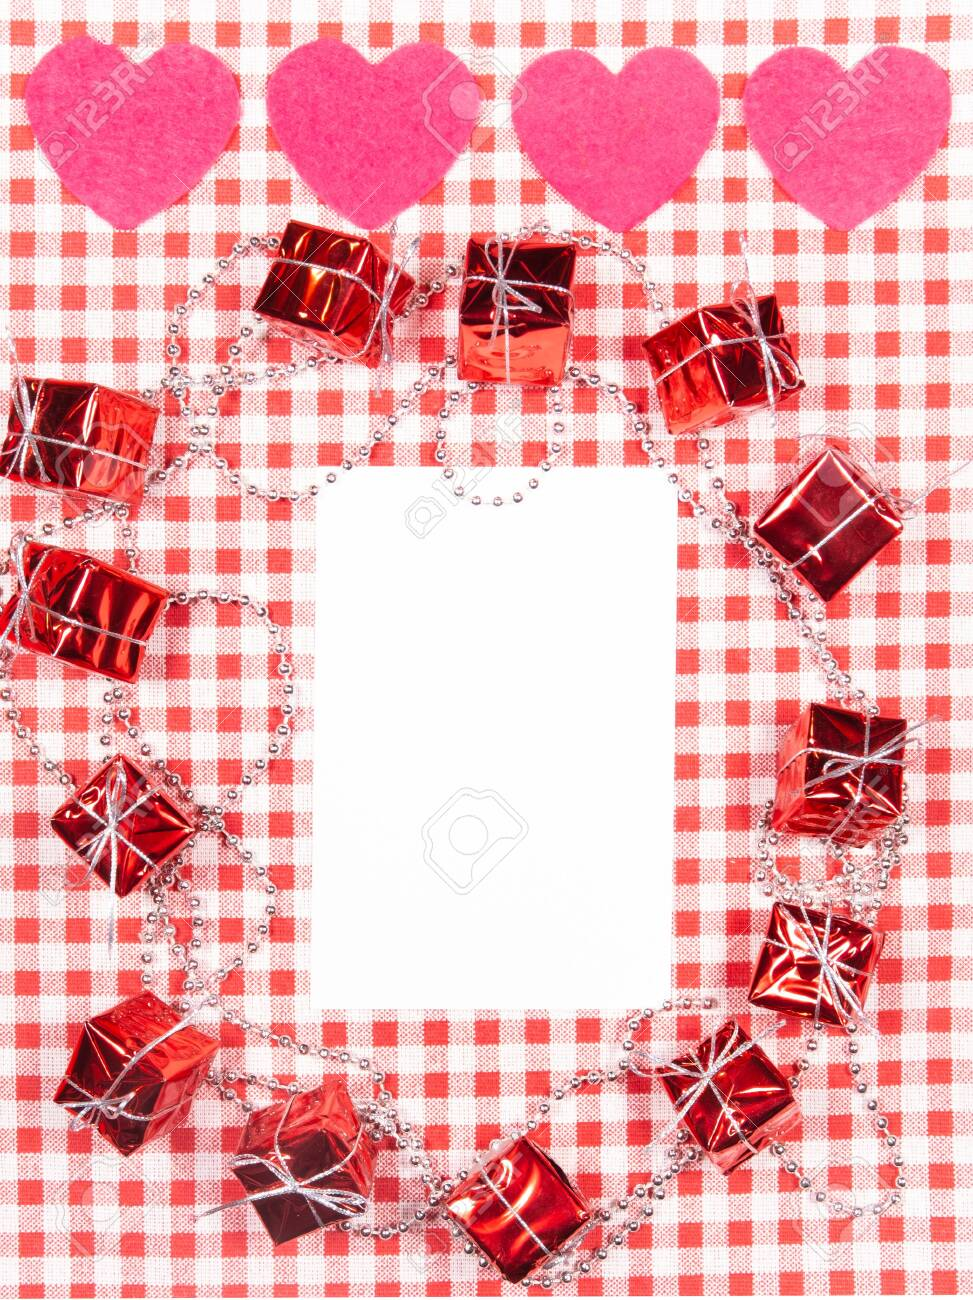 background with red and white Vichy fabric for Valentine's day with pink hearts, small gifts, garlands of small pearls and a white card to put the text. valentines day concept - 138175493